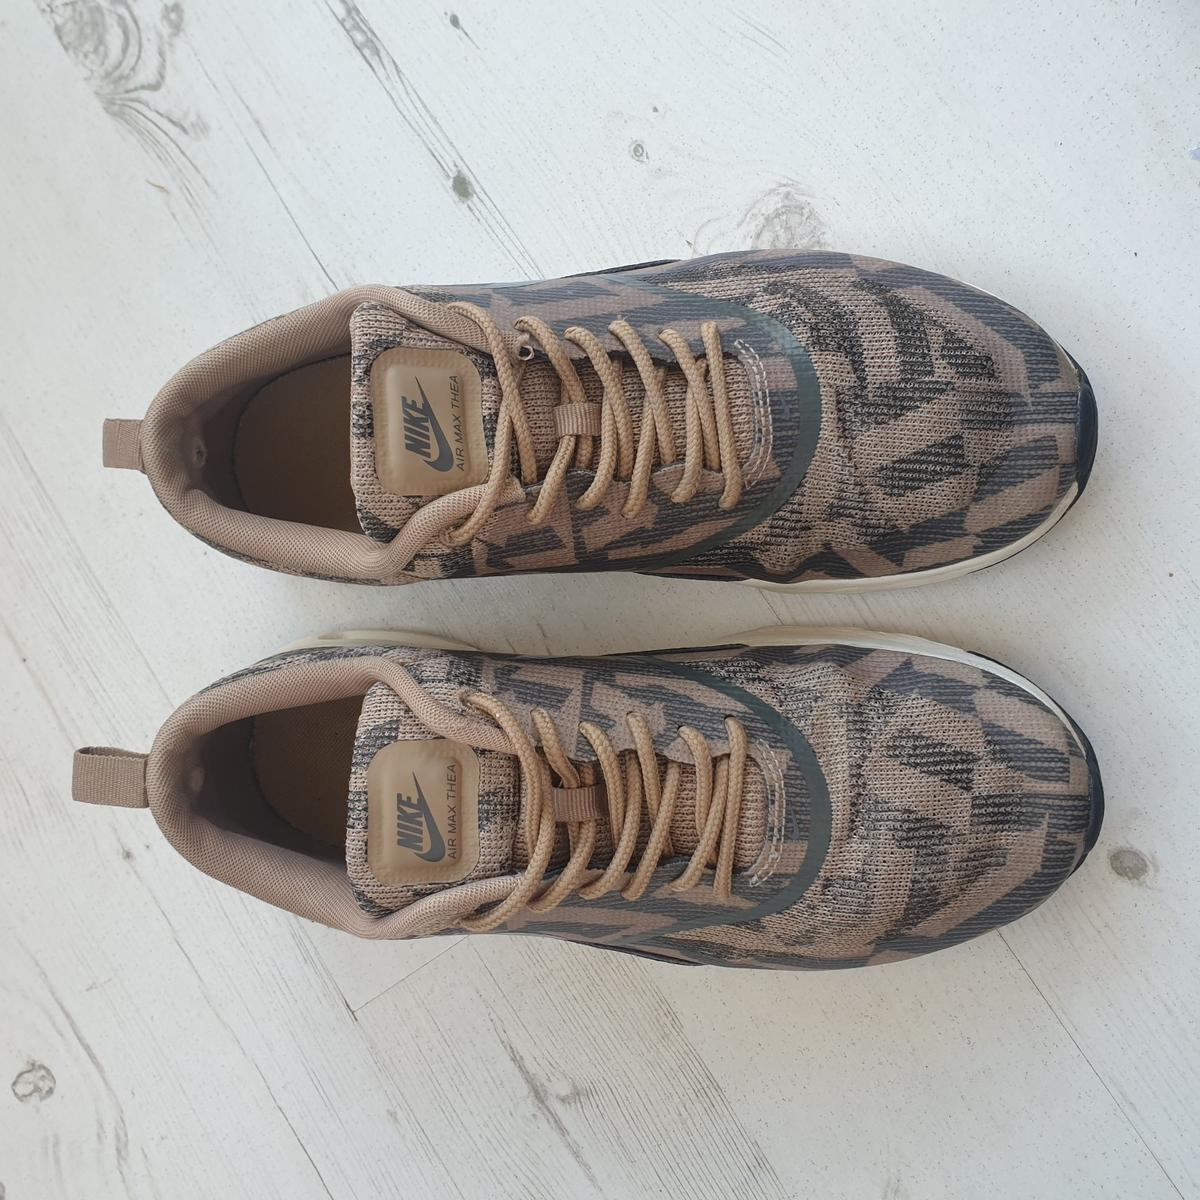 Khaki green print. Slight staining to inside sole, and slight wear on inside heel. otherwise, good condition.